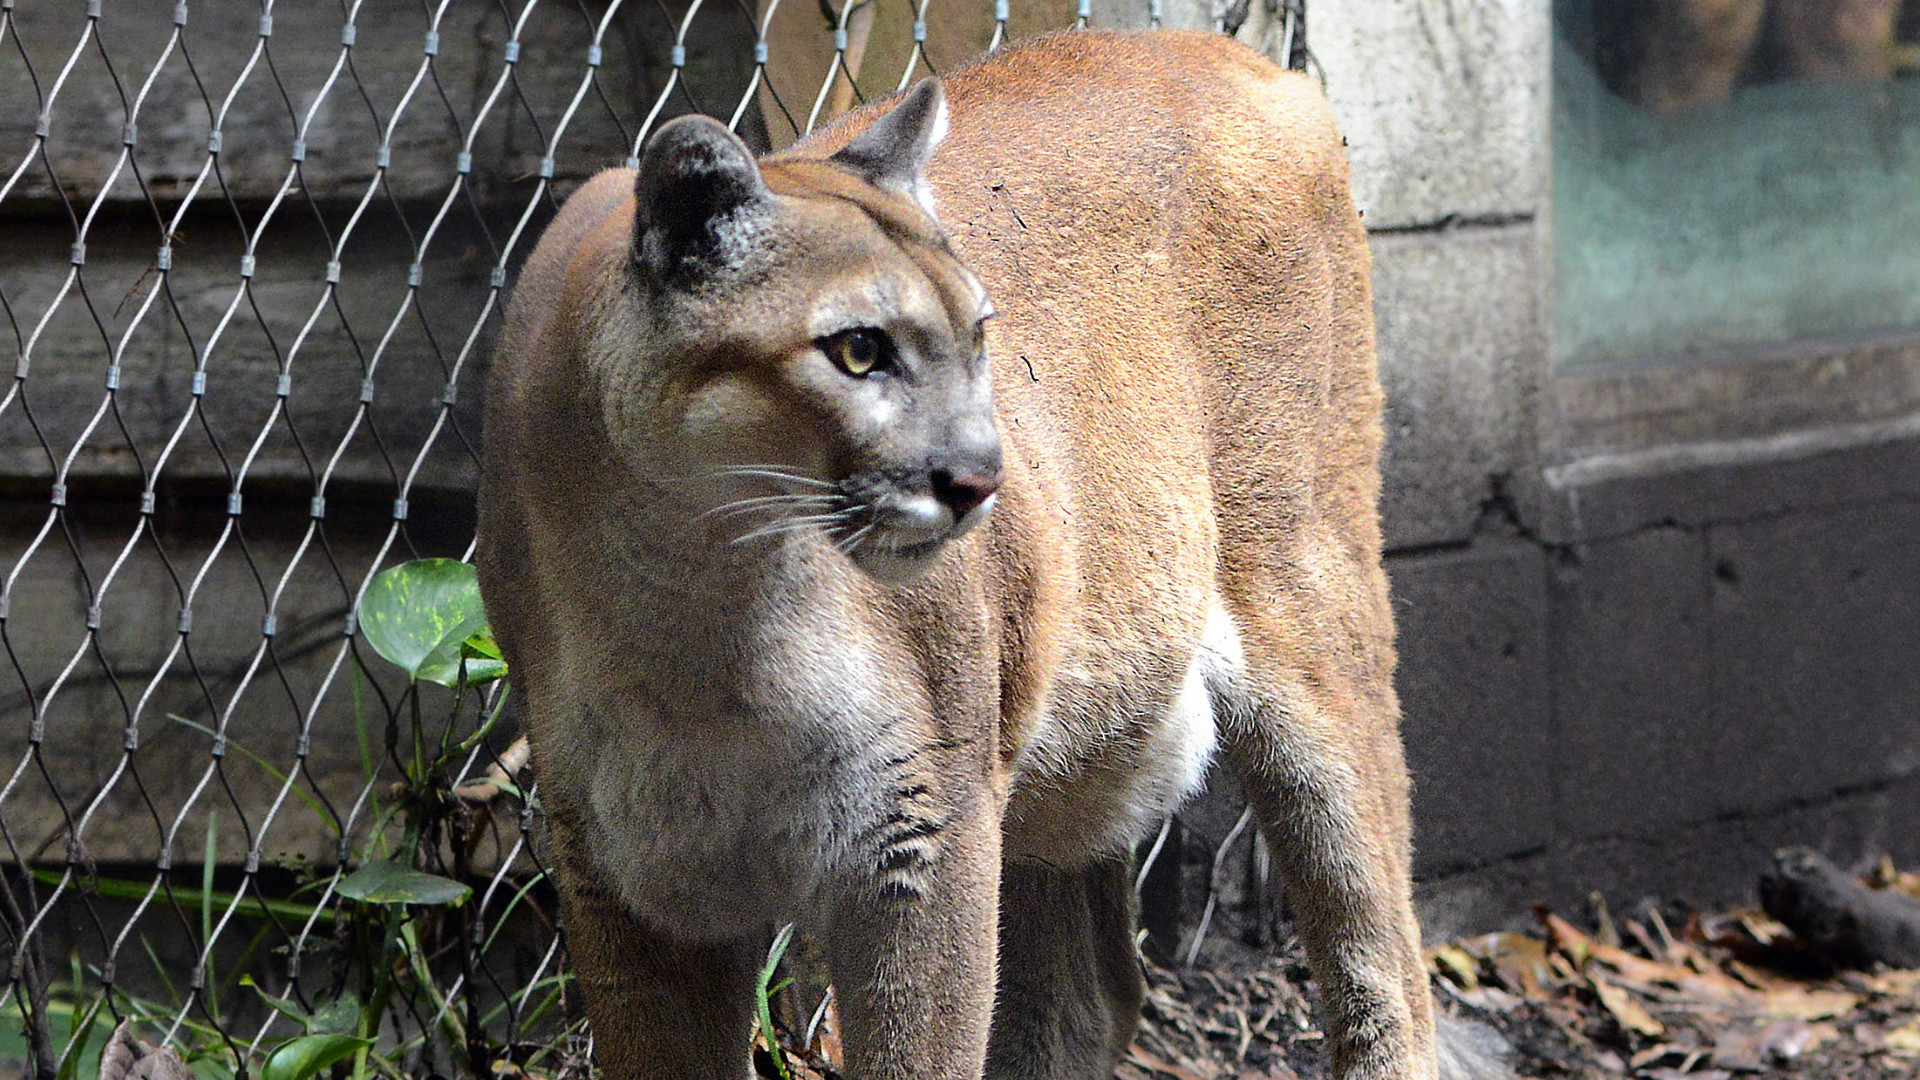 florida panther essay Open document below is an essay on florida panther from anti essays, your source for research papers, essays, and term paper examples.